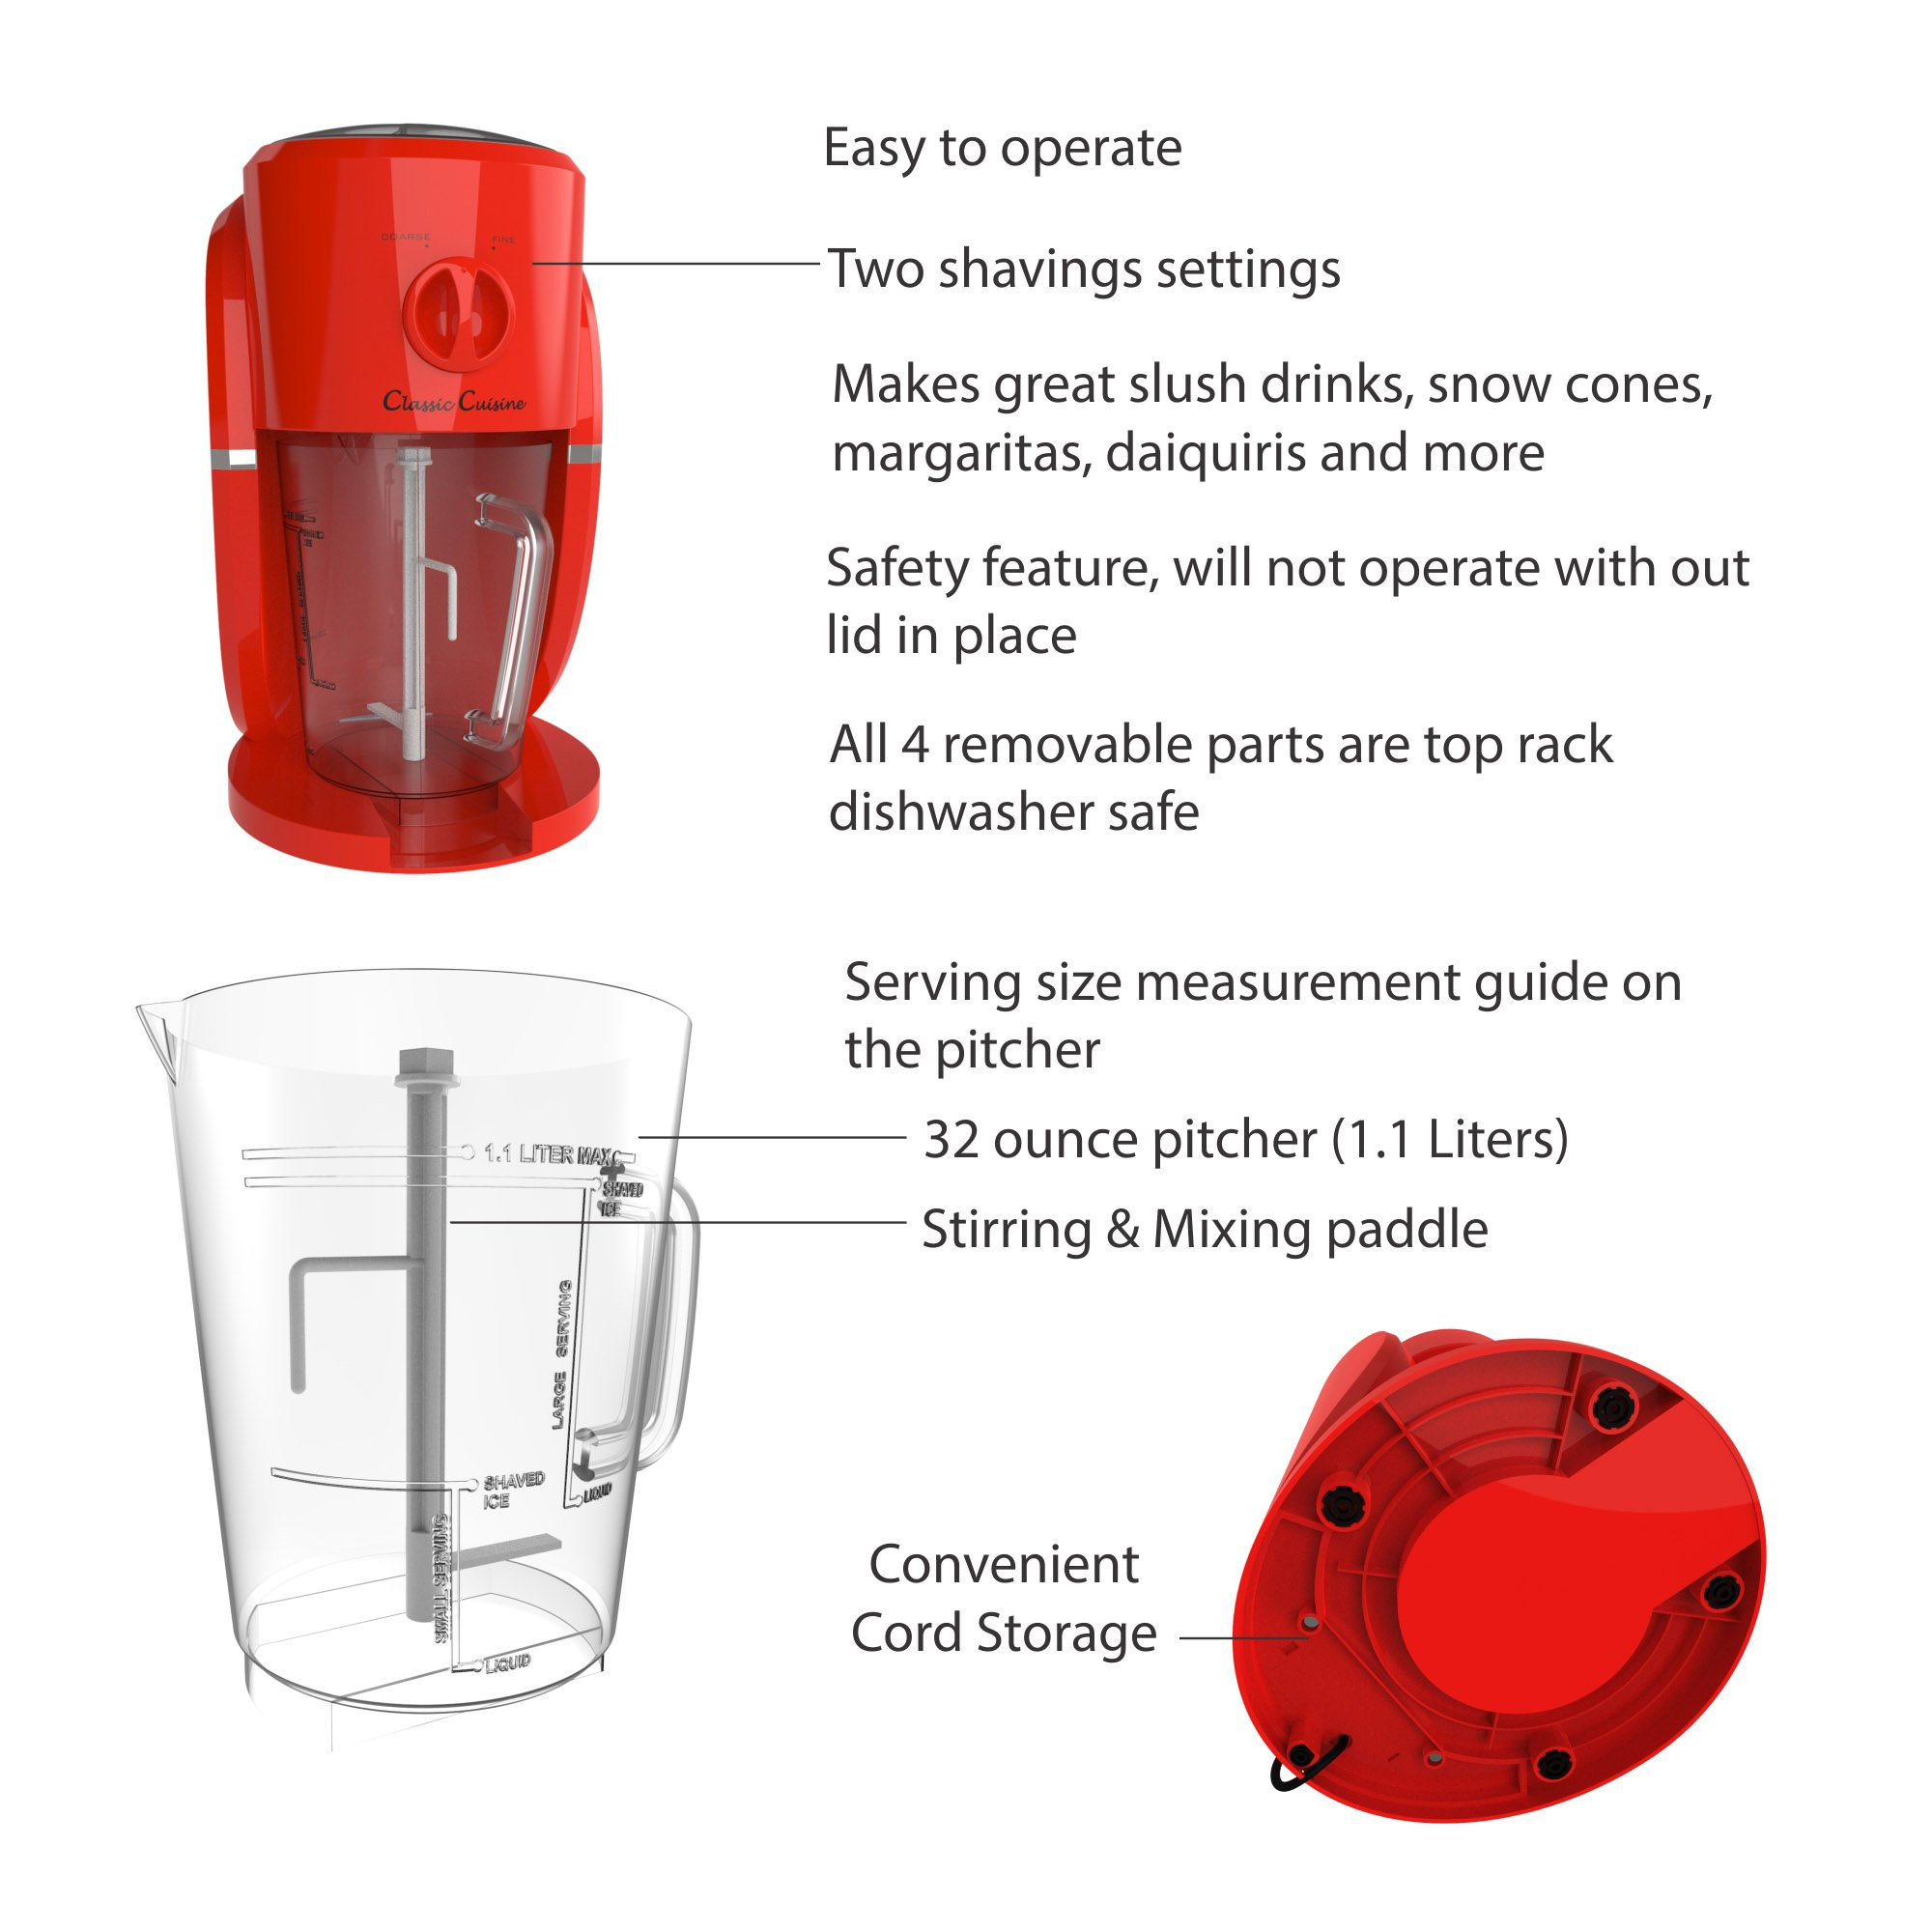 Frozen Drink Maker, Mixer and Ice Crusher Machine for Margaritas, Pina Coladas, Daiquiris, Shaved Ice Treats or Slushy Desserts by Classic Cuisine by Classic Cuisine (Image #2)